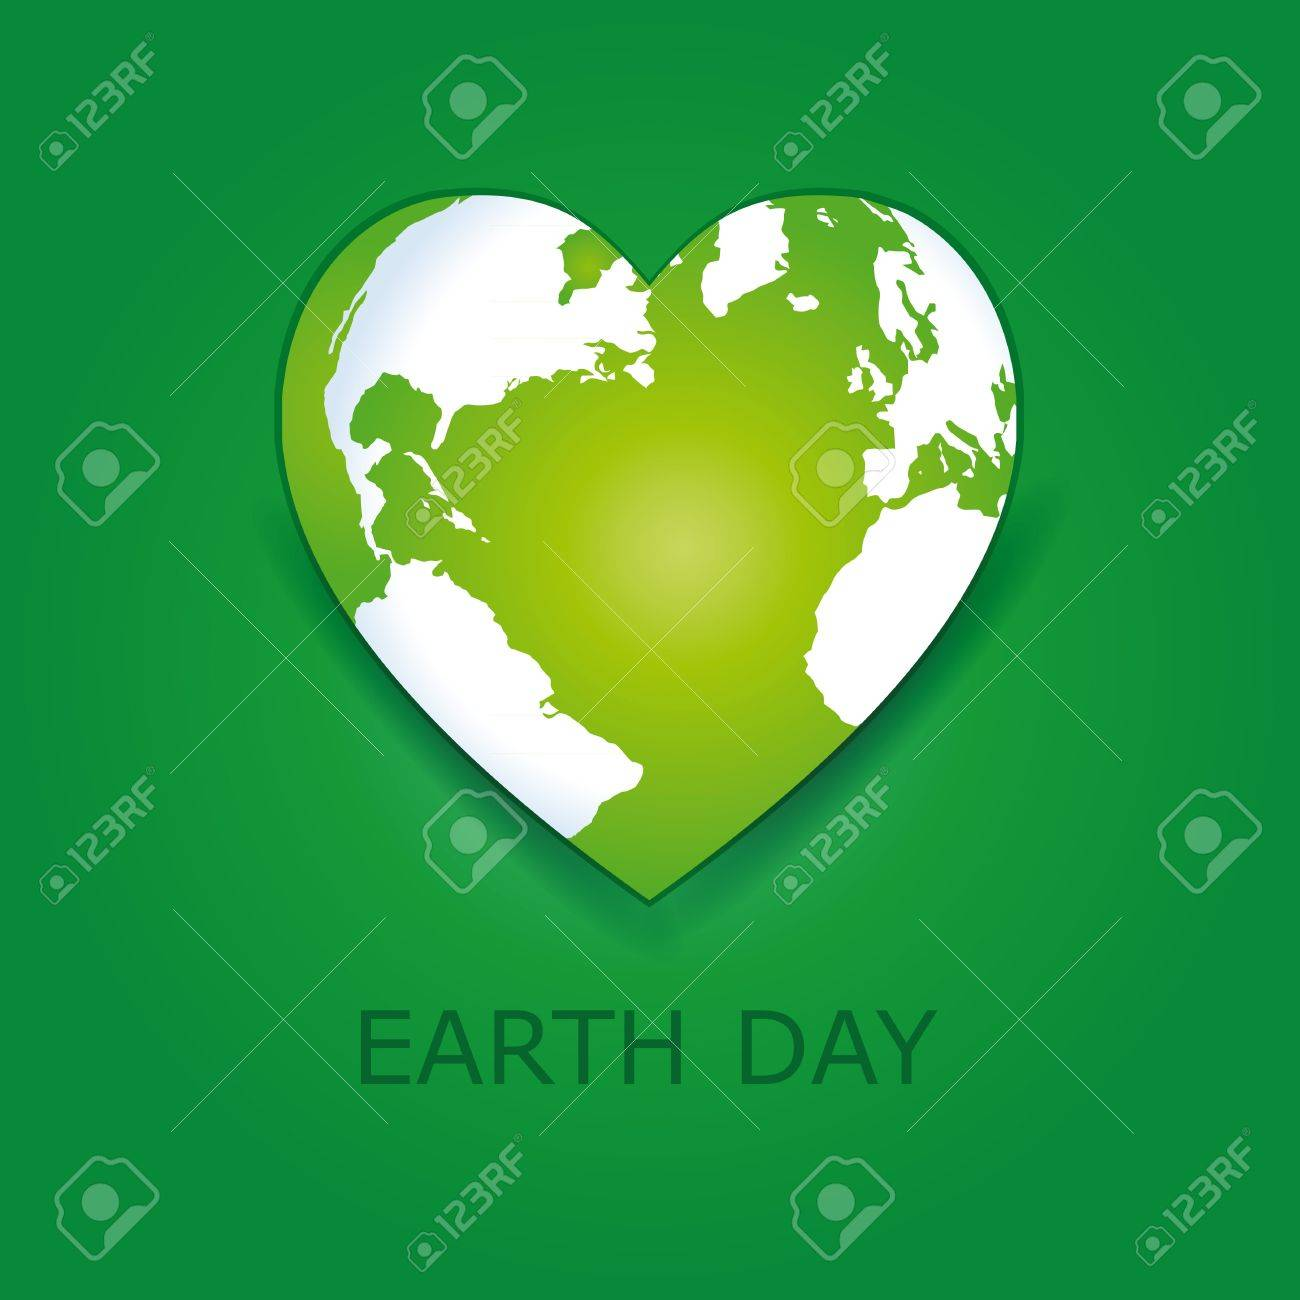 Abstract green heart together with green earth. Stock Vector - 18465682